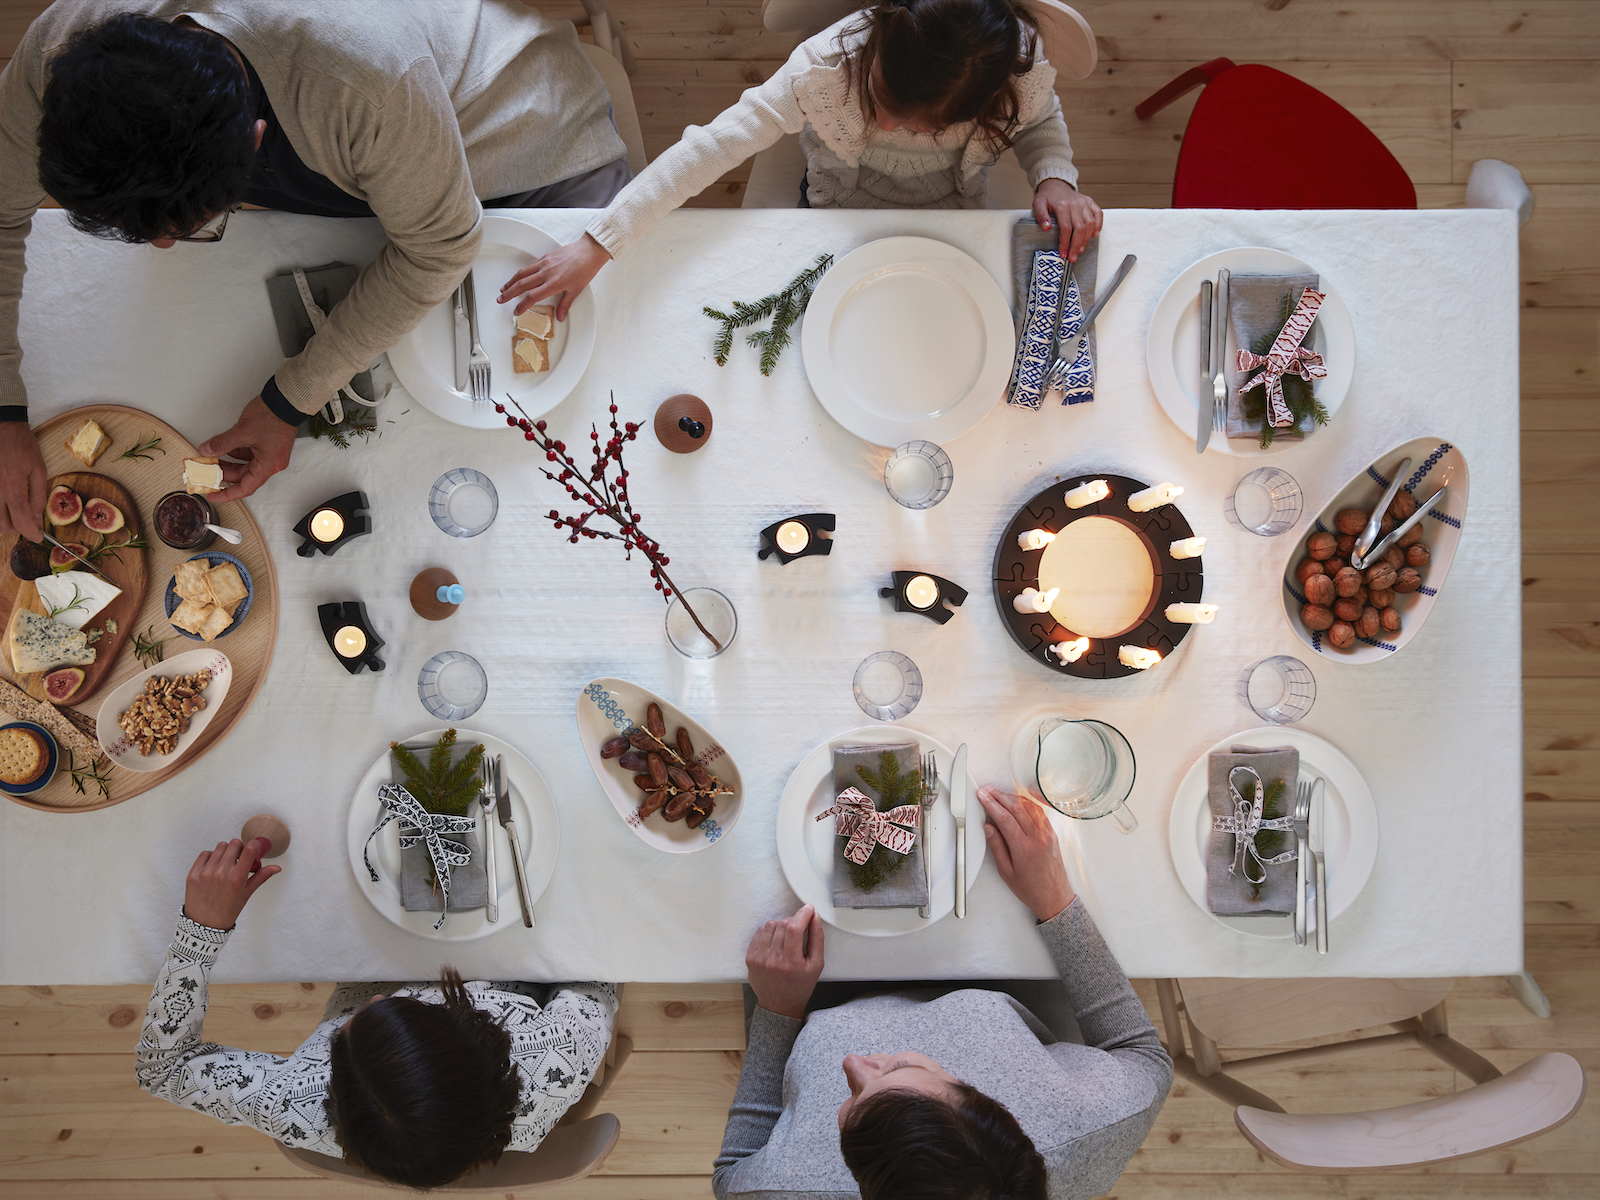 A family sitting around dinner table with white dinnerware and black candleholders.